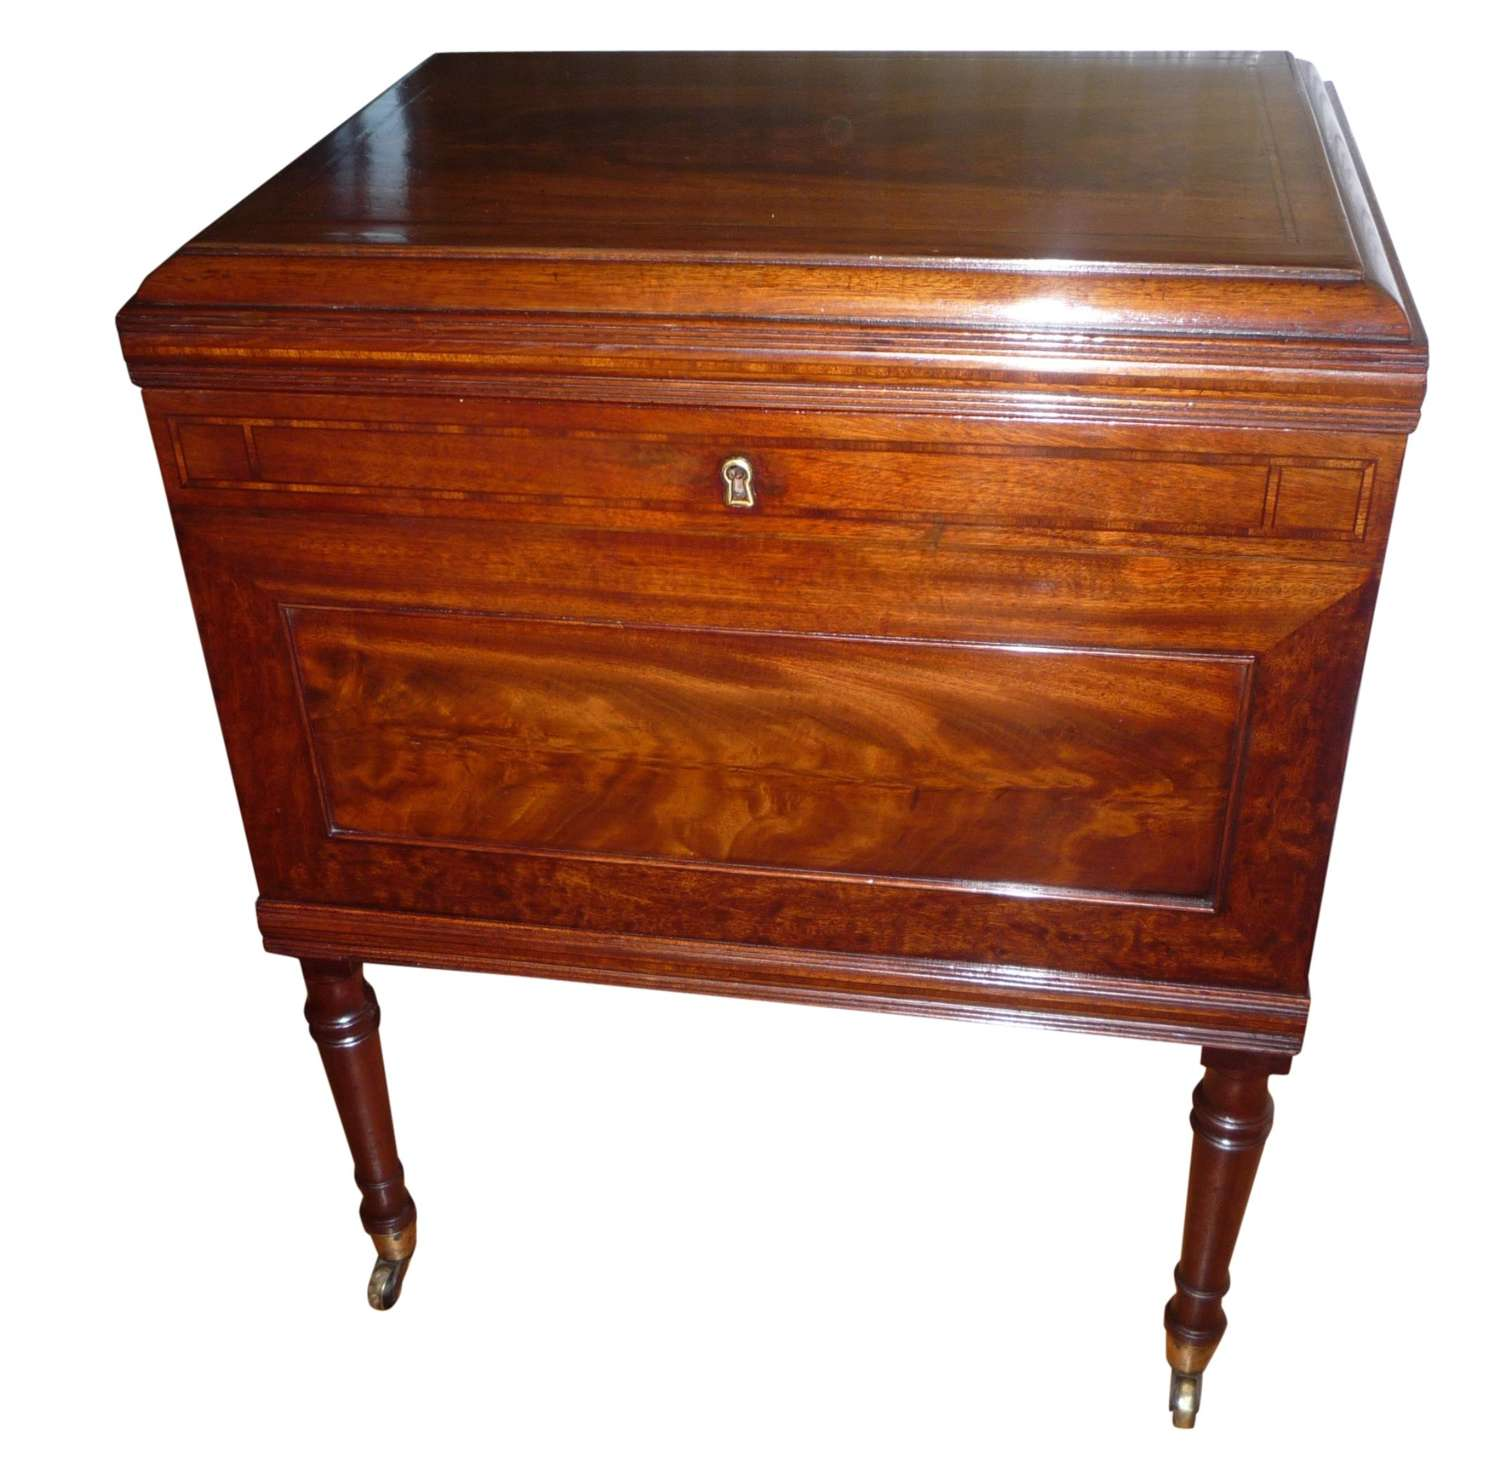 A Georgian mahogany wine cellaret circa 1820